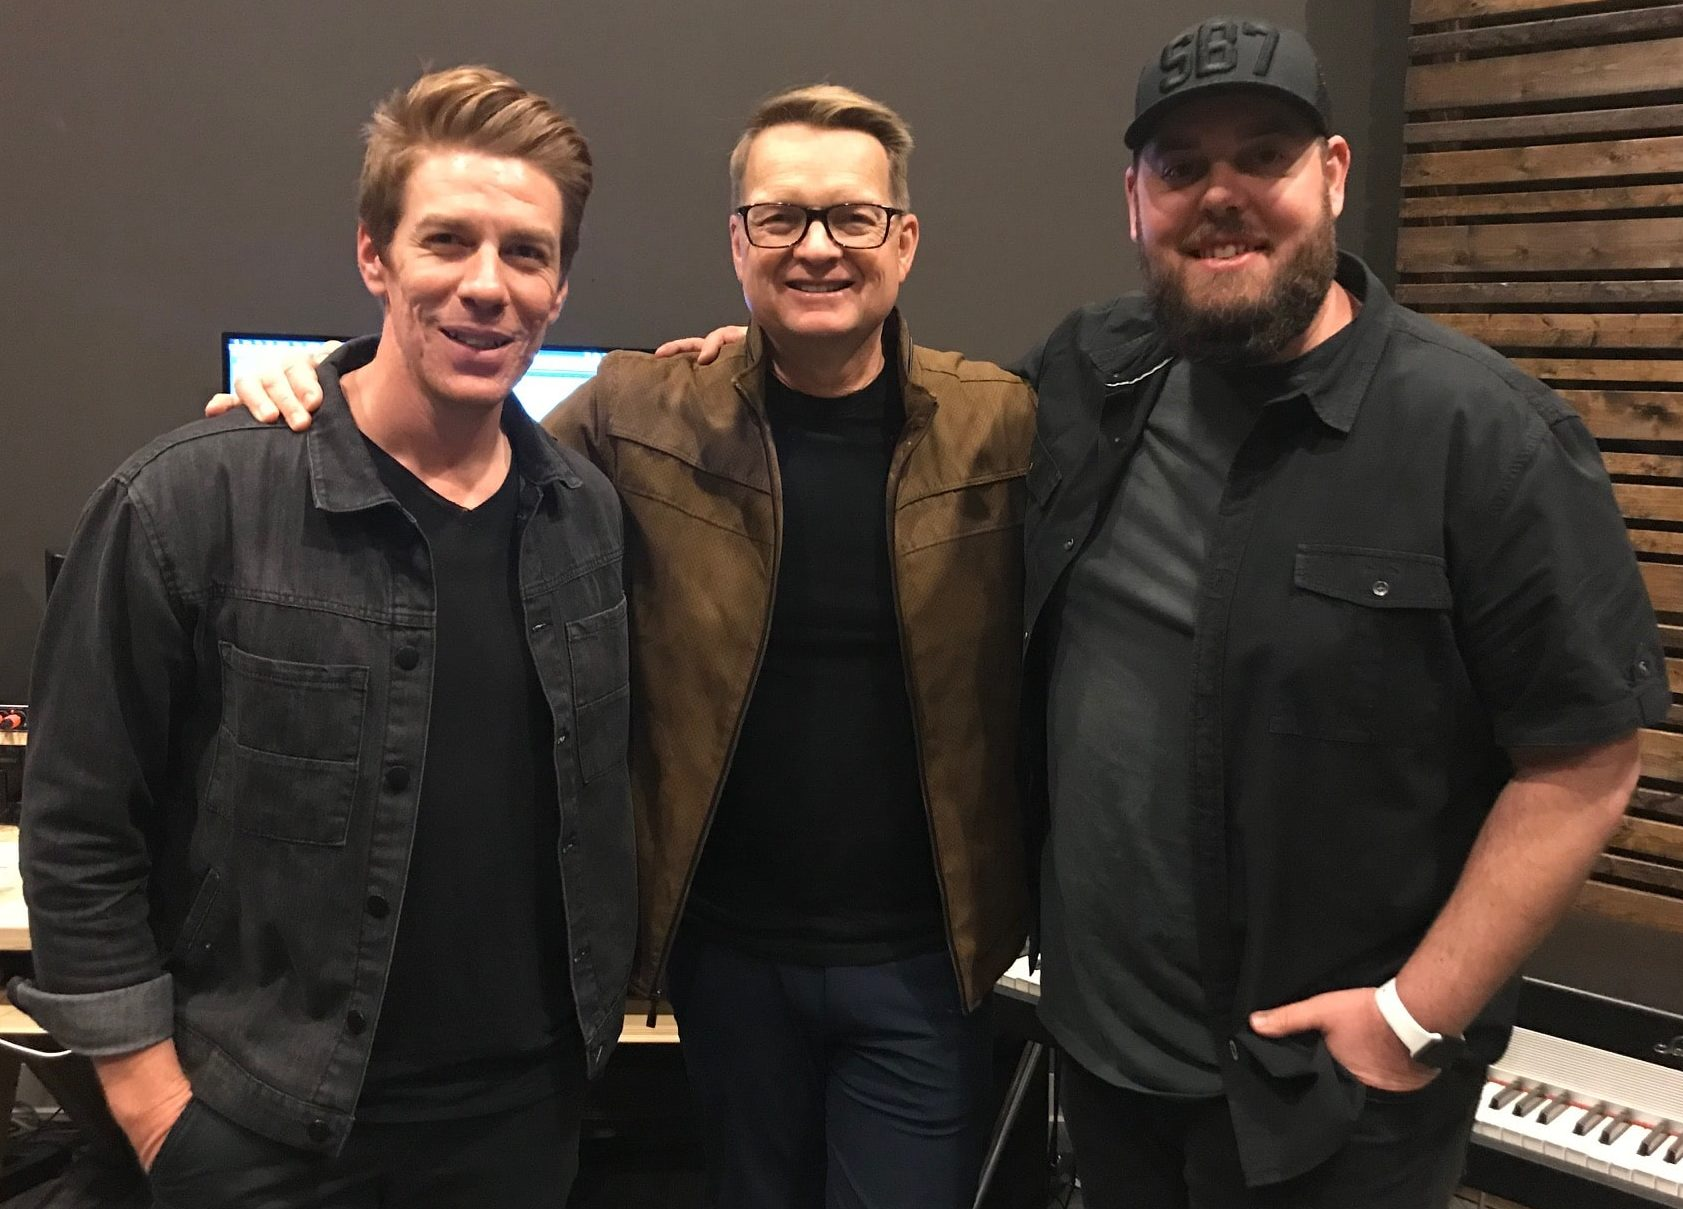 CNLP 251: Drew Powell and Matt Warren on Why Attractional Church is Past Peak, Why It's Changing and What's Next for Weekend Services